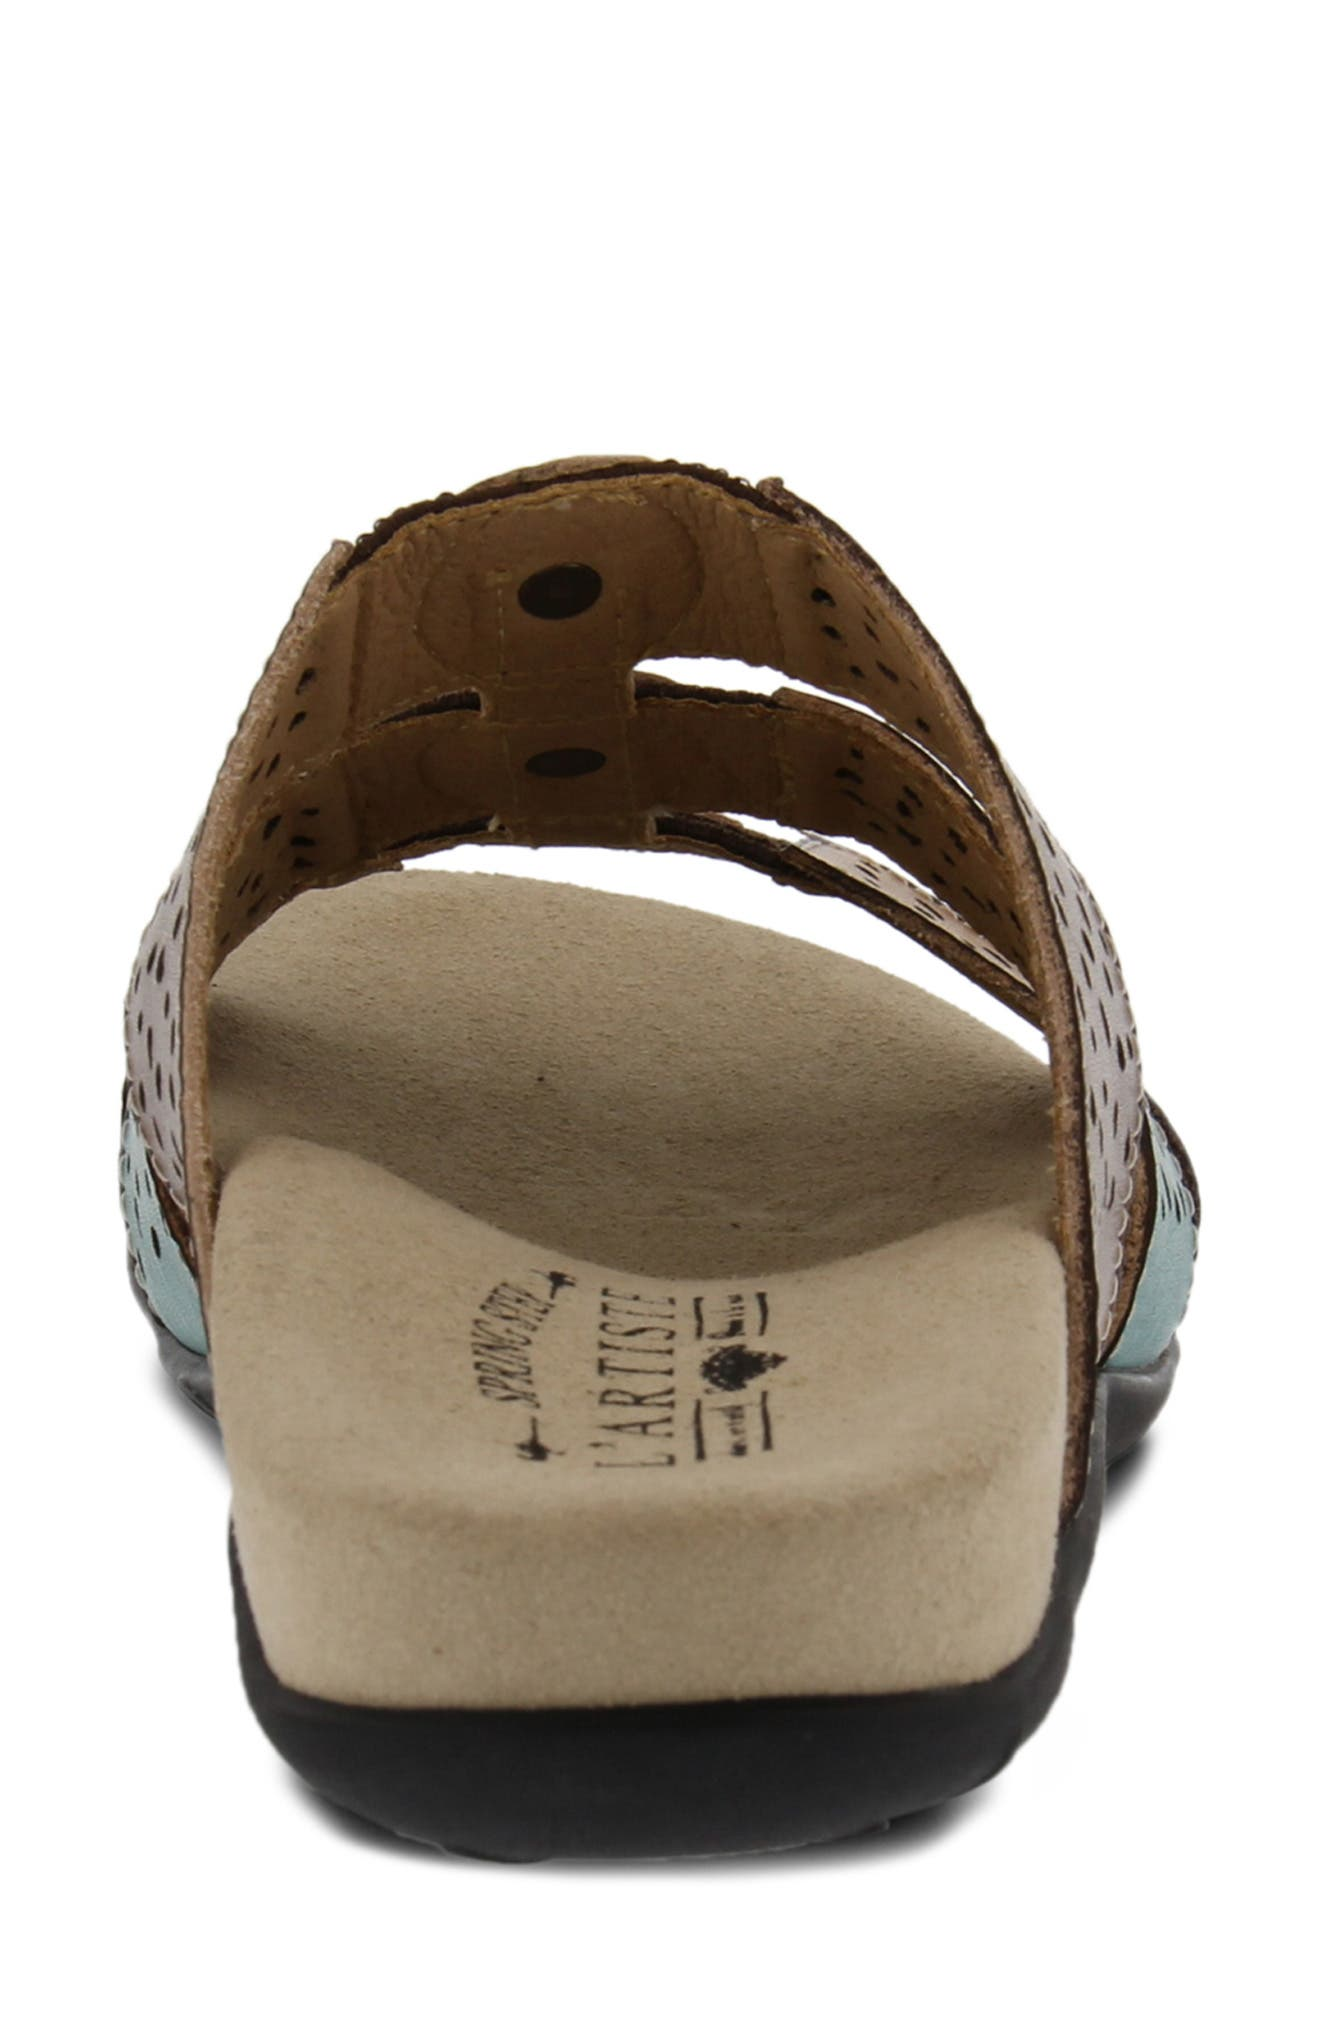 Glennie Sandal,                             Alternate thumbnail 6, color,                             GREY MULTI LEATHER